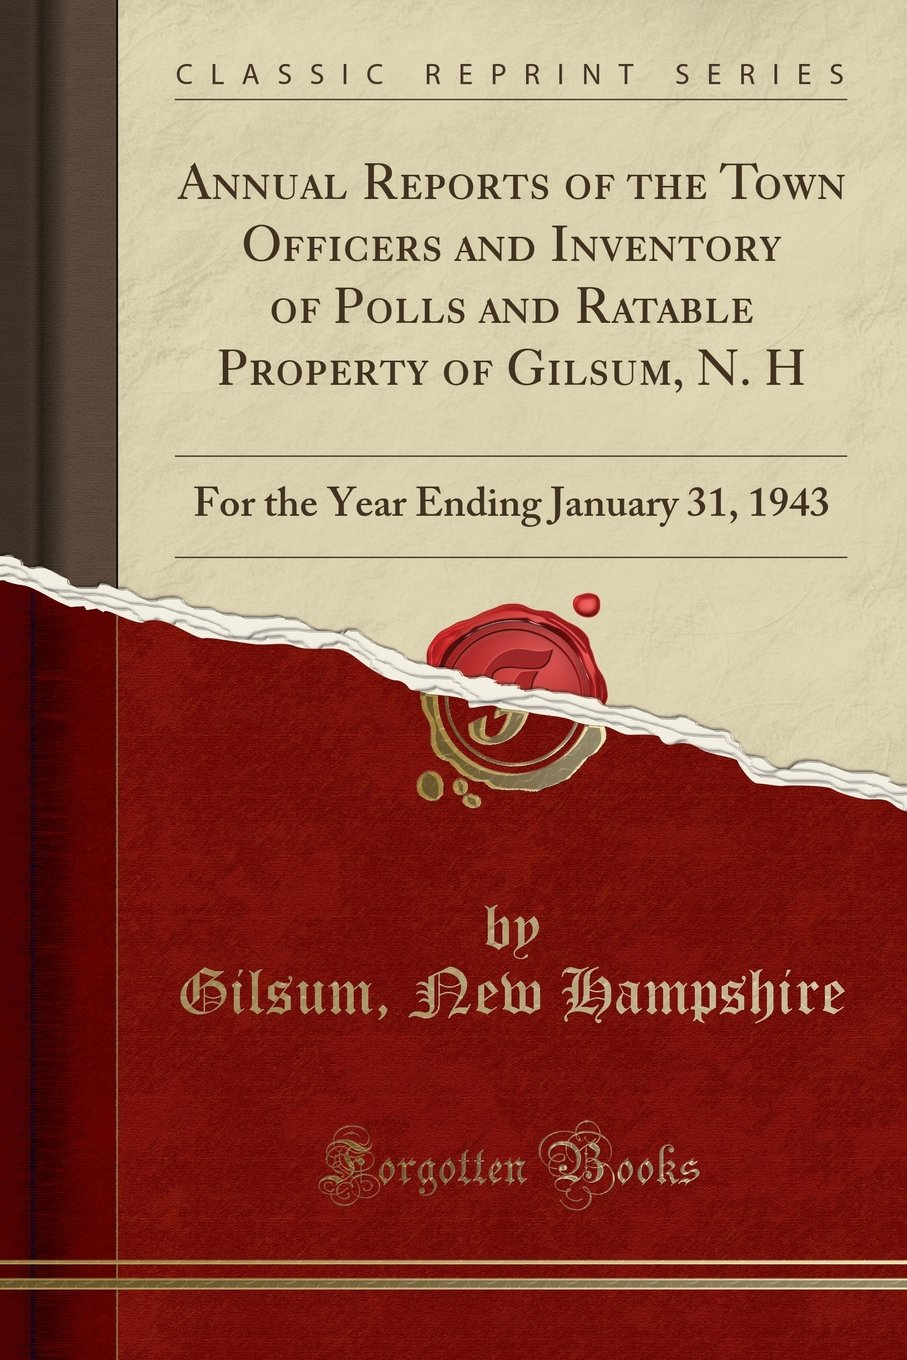 Annual Reports of the Town Officers and Inventory of Polls and Ratable Property of Gilsum, N. H: For the Year Ending January 31, 1943 (Classic Reprint) PDF